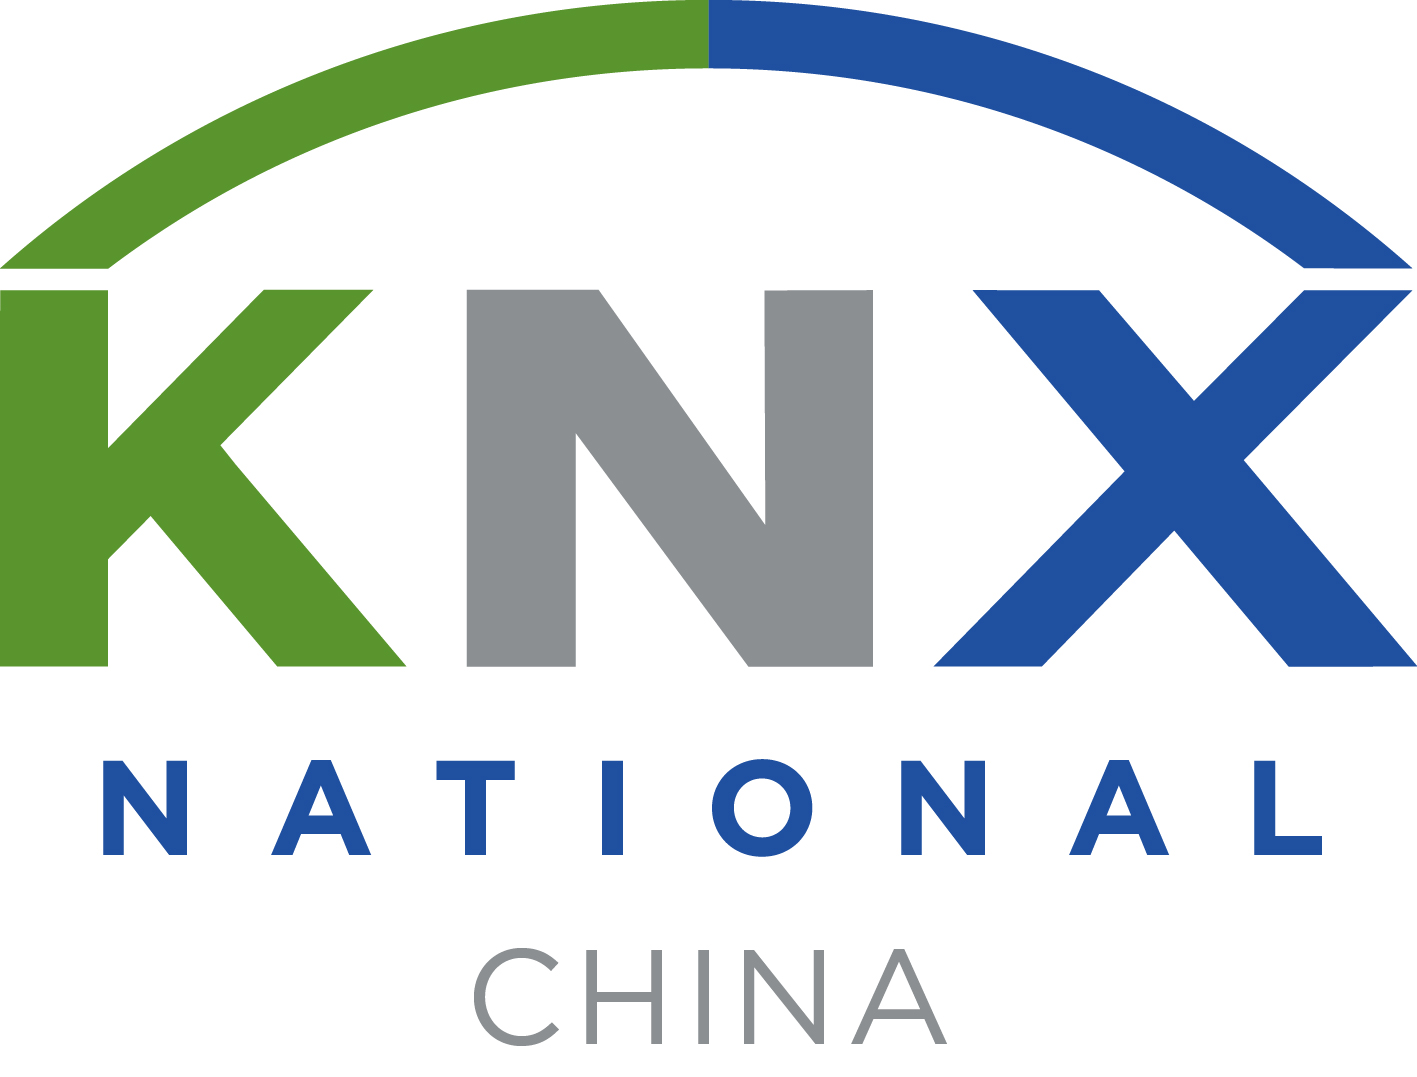 https://www.knx.org/knx-en/for-professionals/index.php